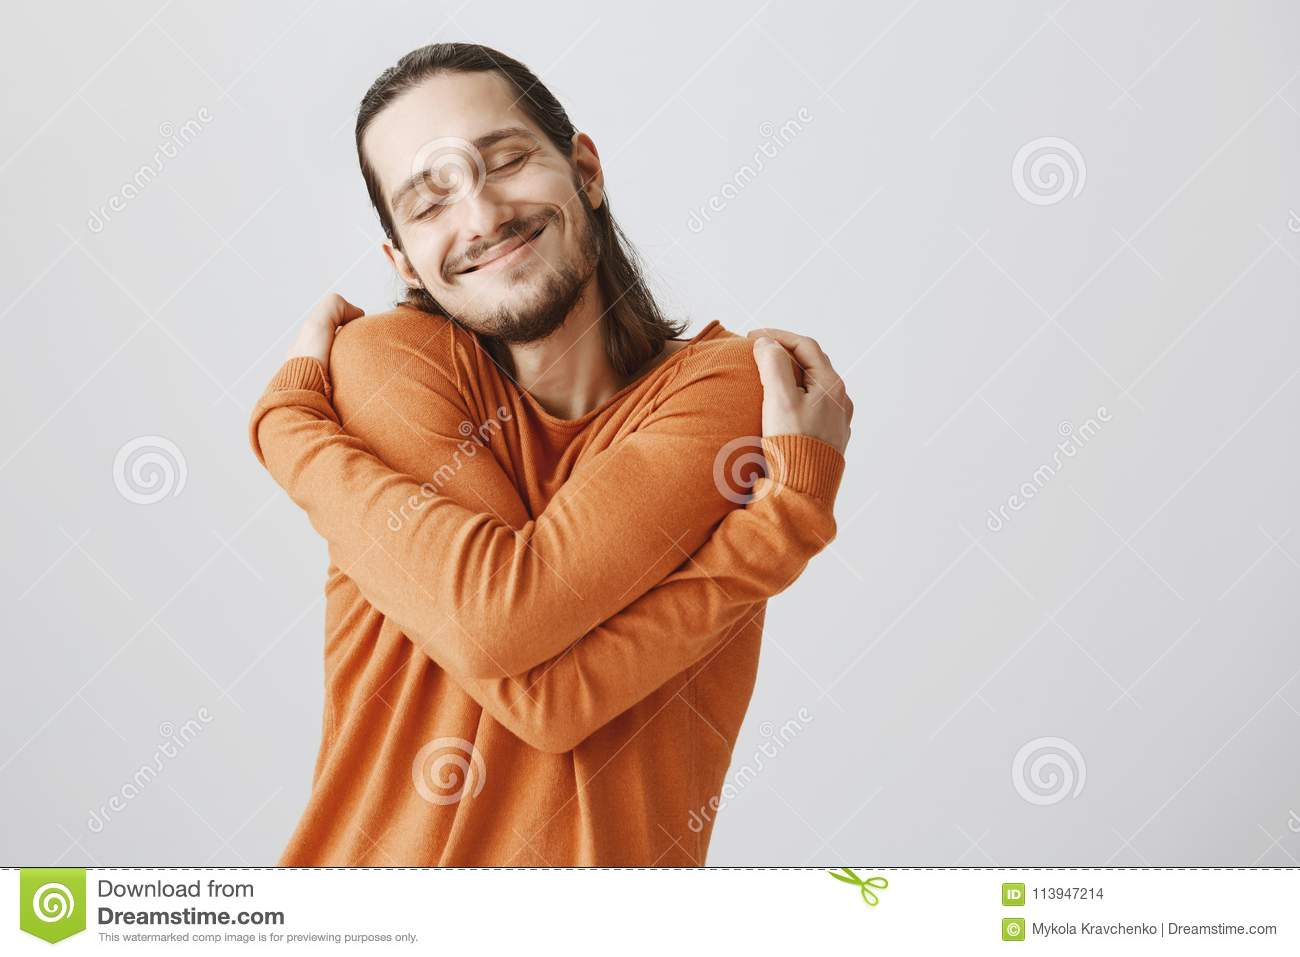 Who need girlfriends if you can hug yourself. Funny playful european guy with long hair and beard cuddling himself and